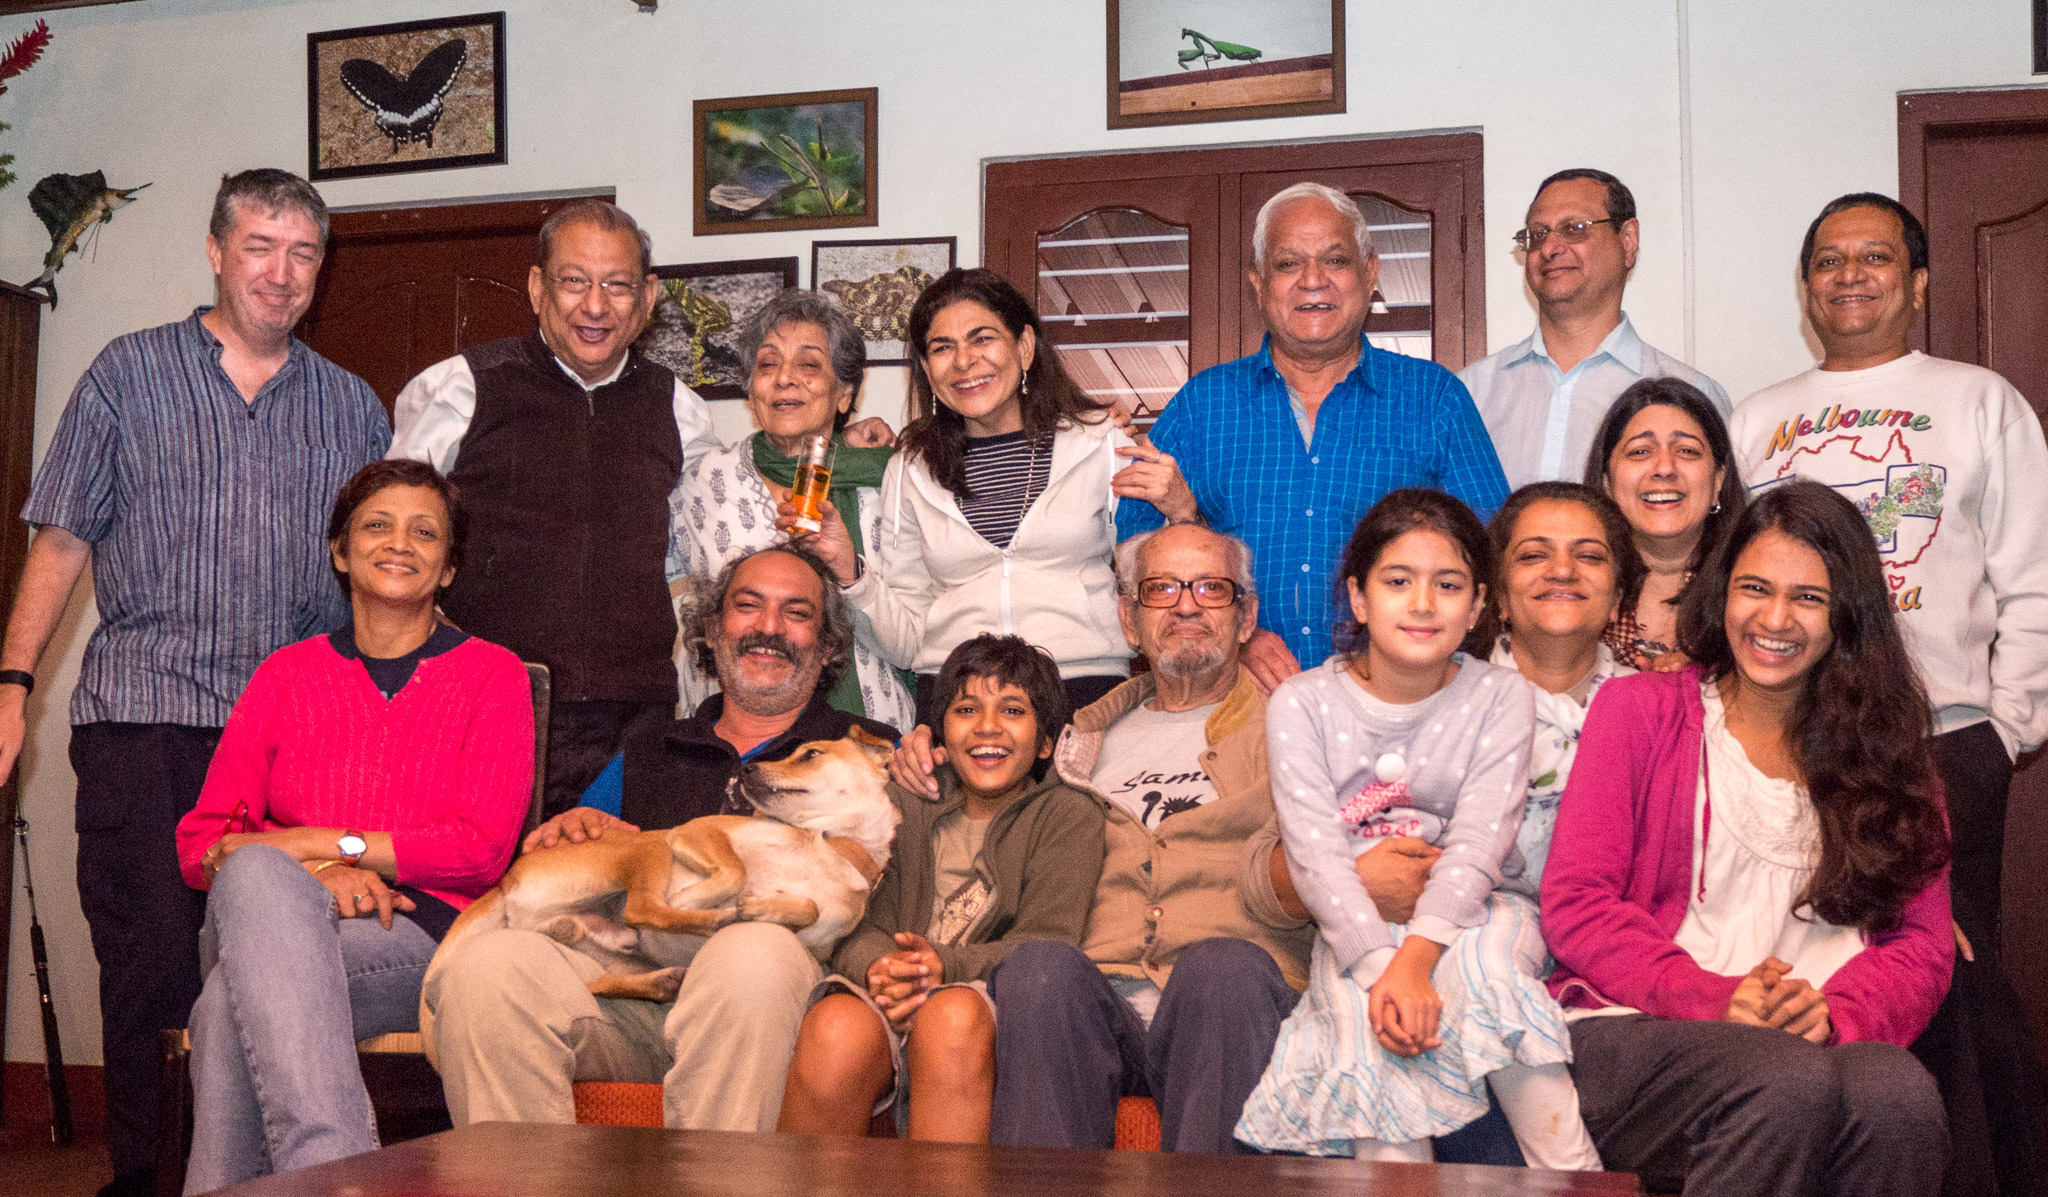 Four generations of S P Chaube's offspring. Photo includes individuals ranging in age from approximately 10 year old to approximately 90.